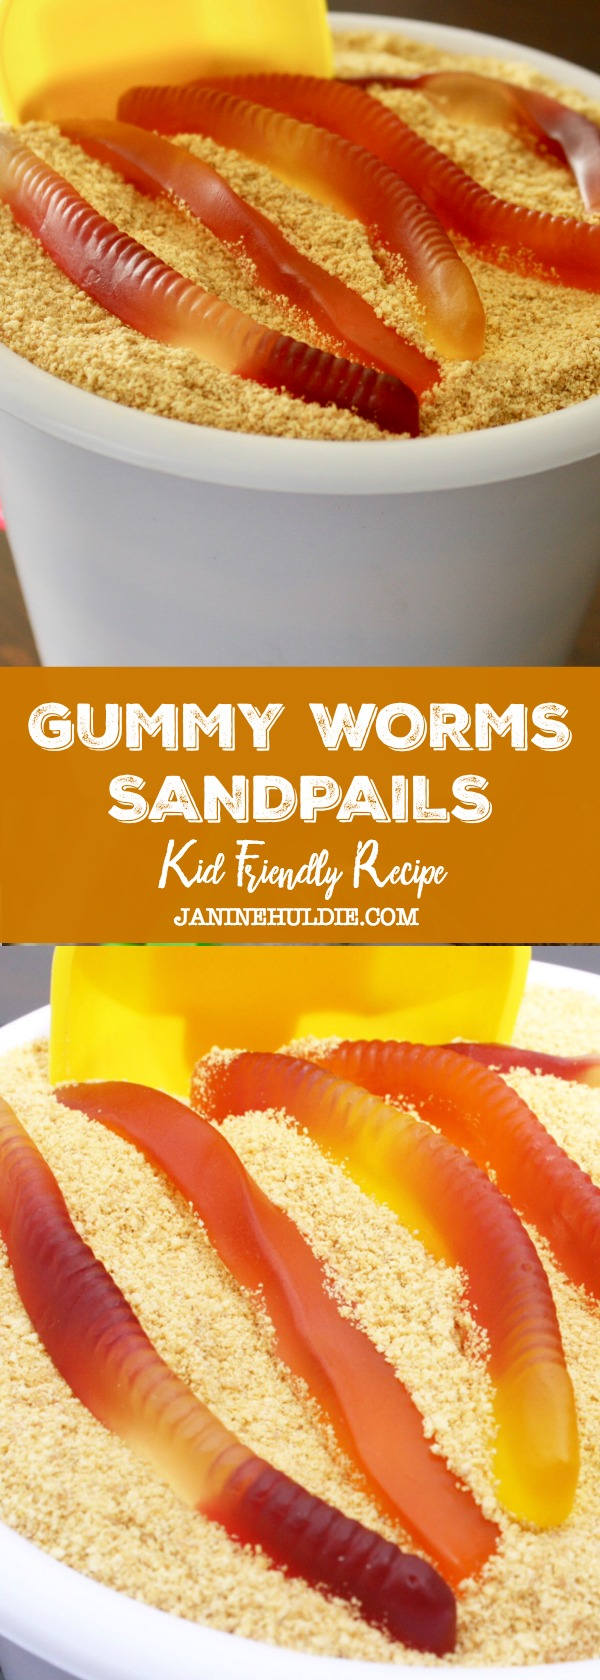 Gummy Worms Sandpails Recipe